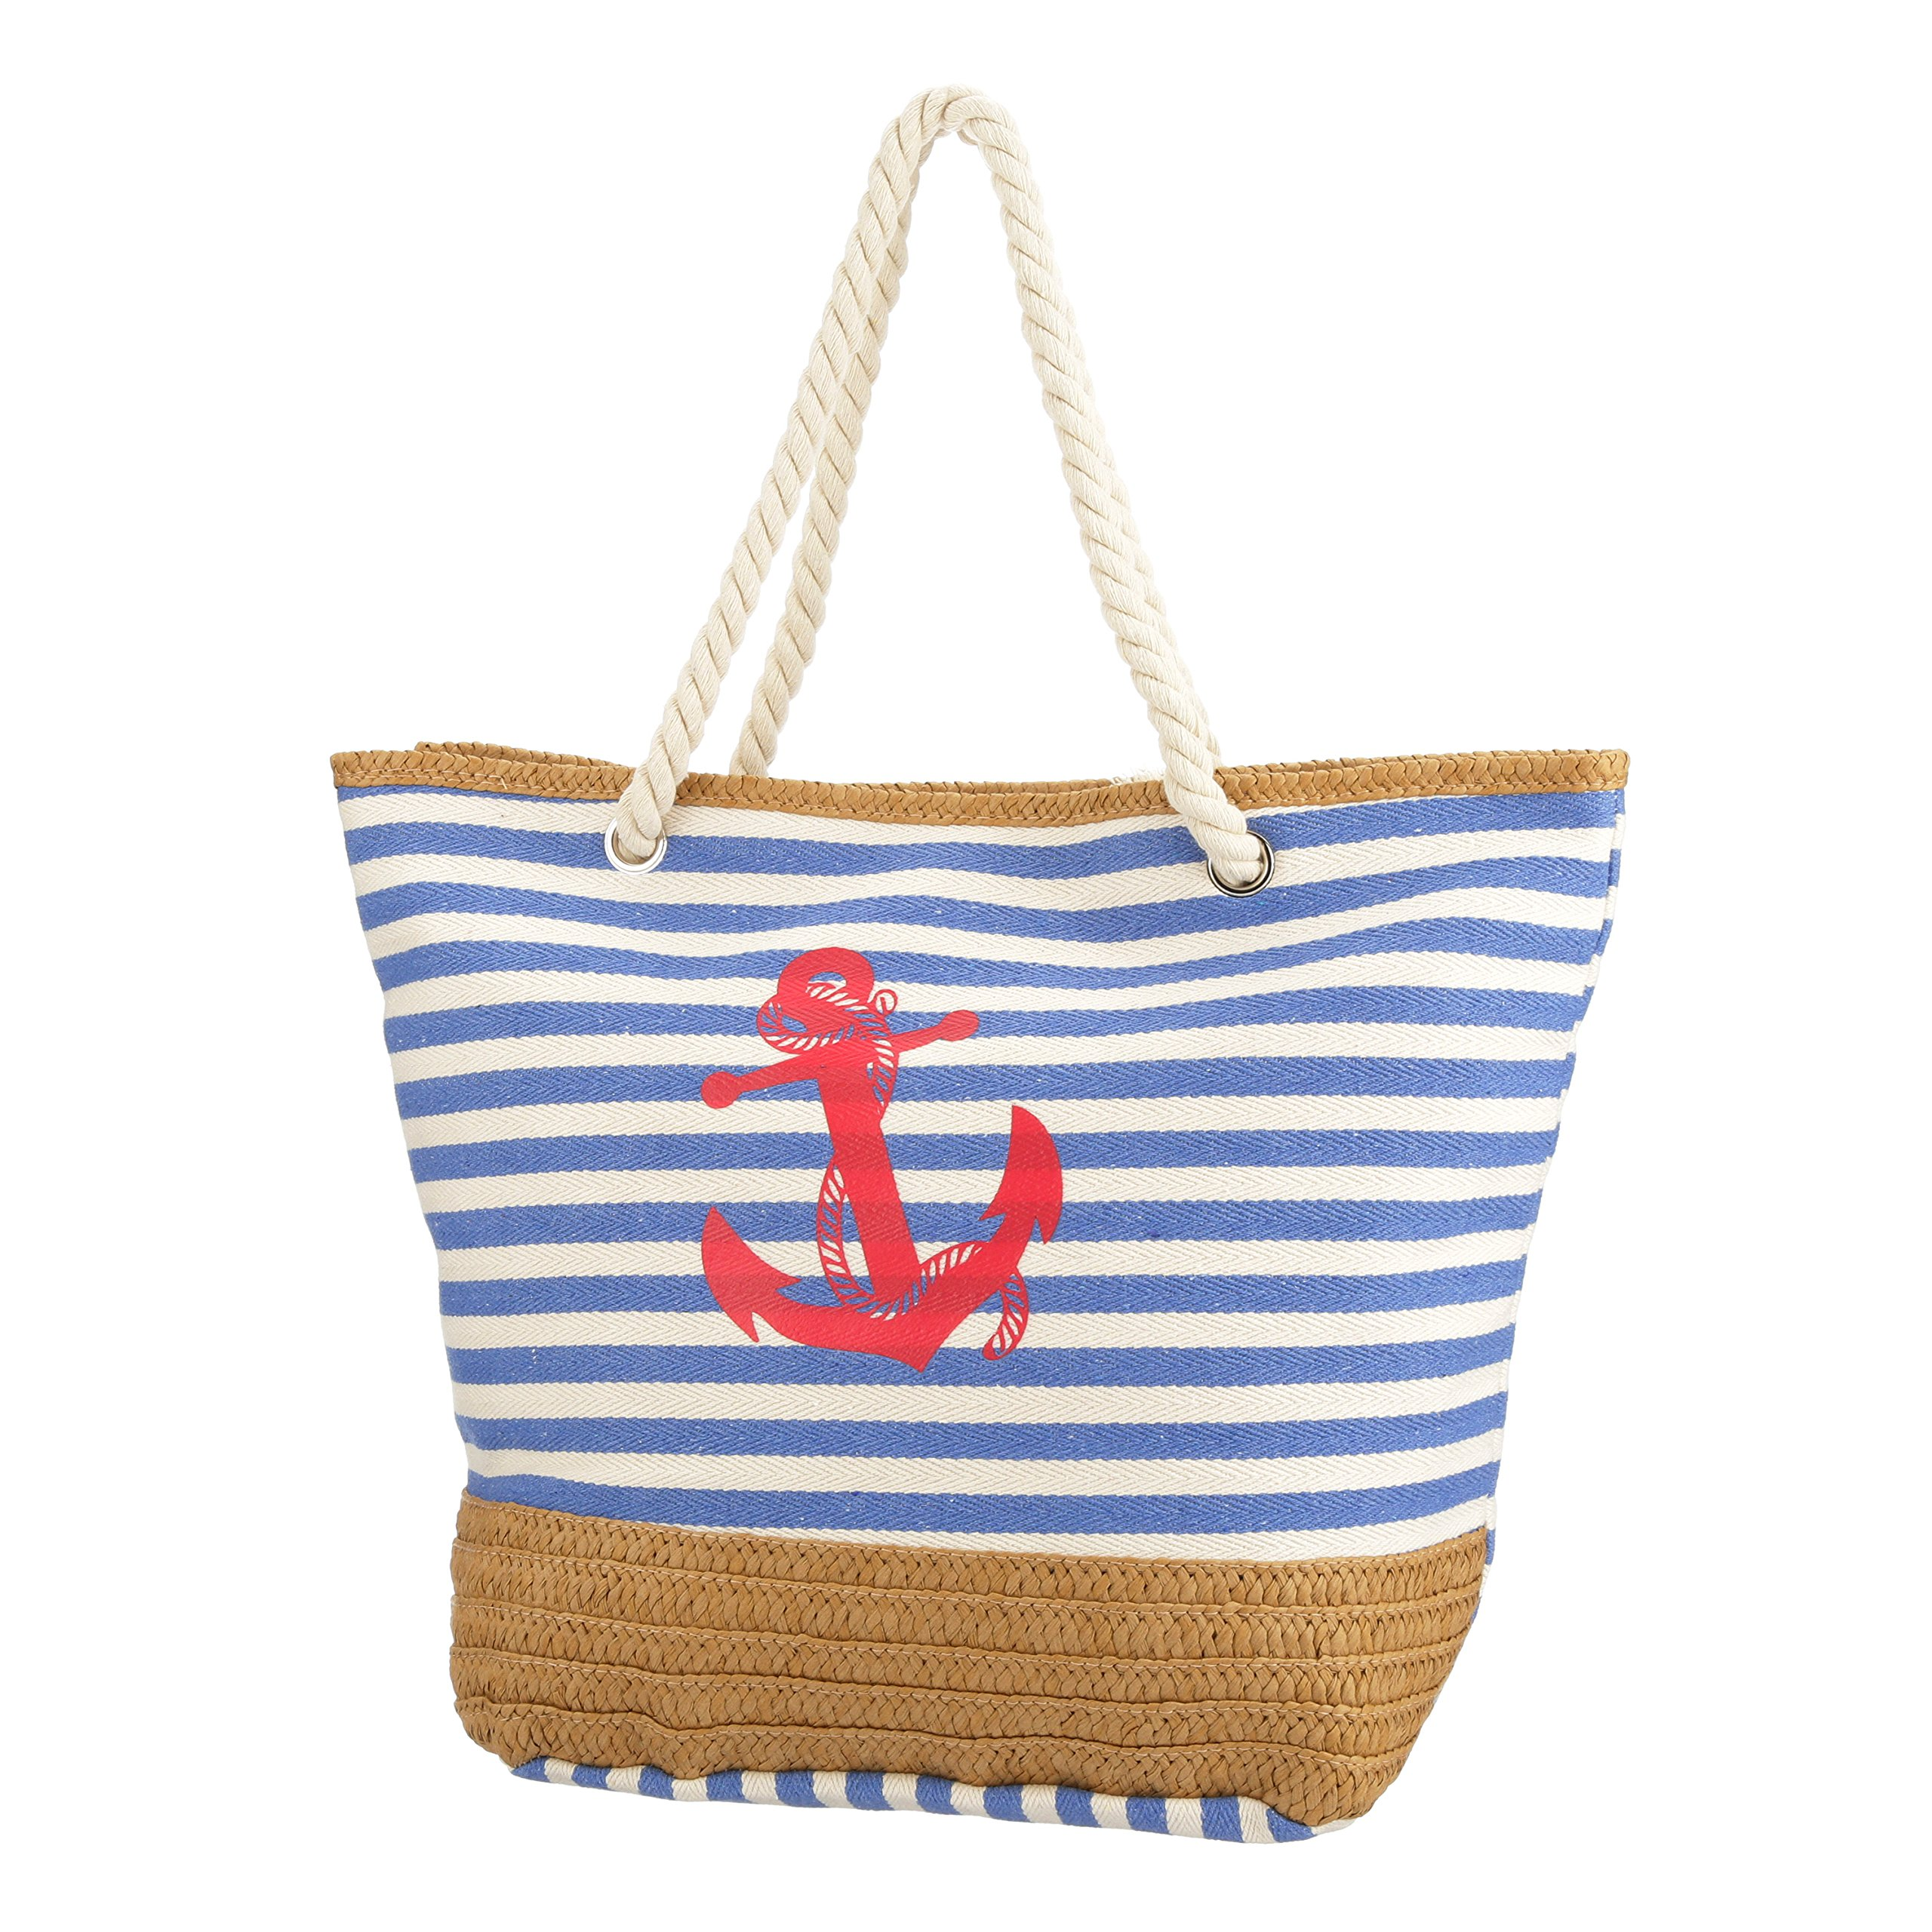 New Vera Tote Shoulder Bag (True Blue)